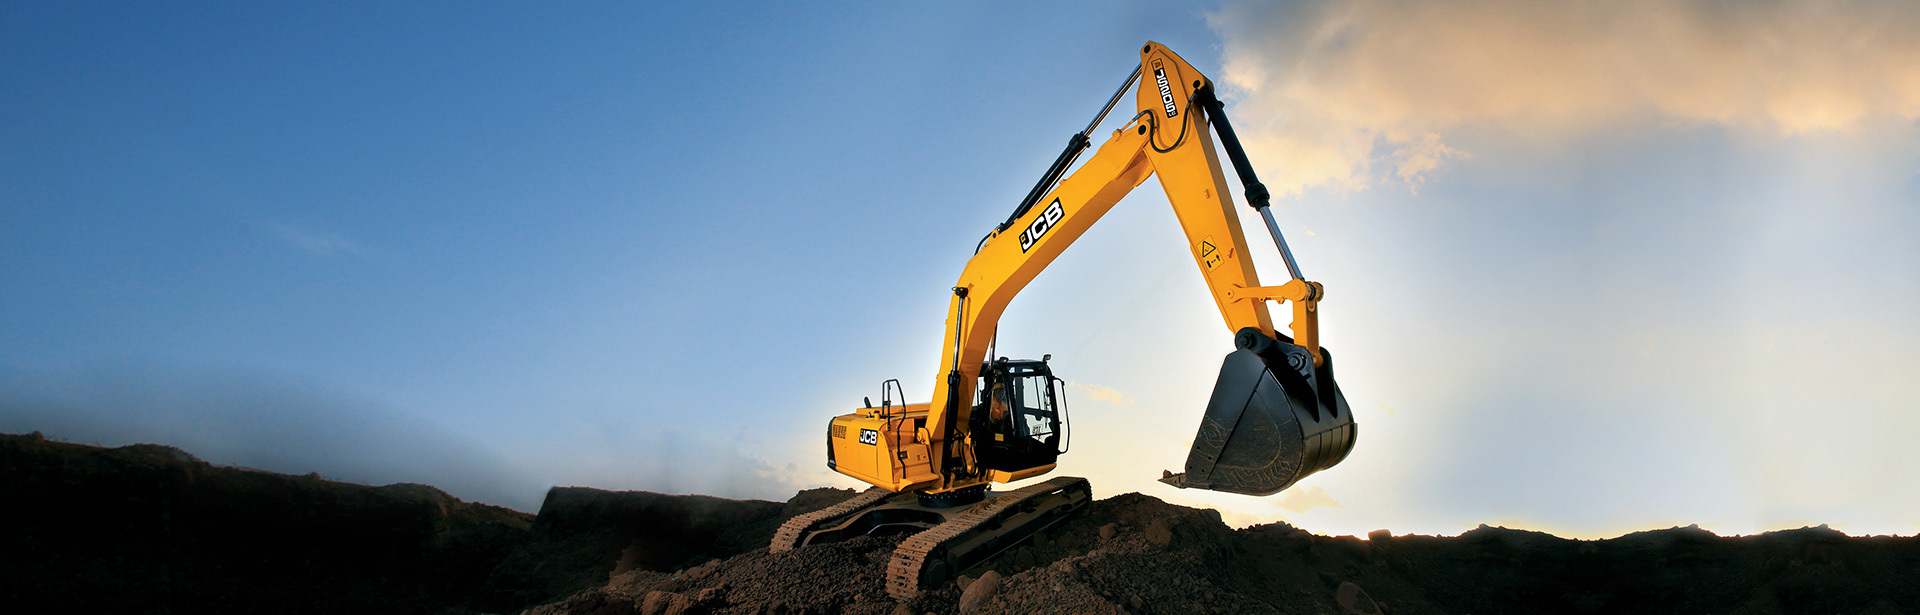 JCB Tracked Excavators Lucknow